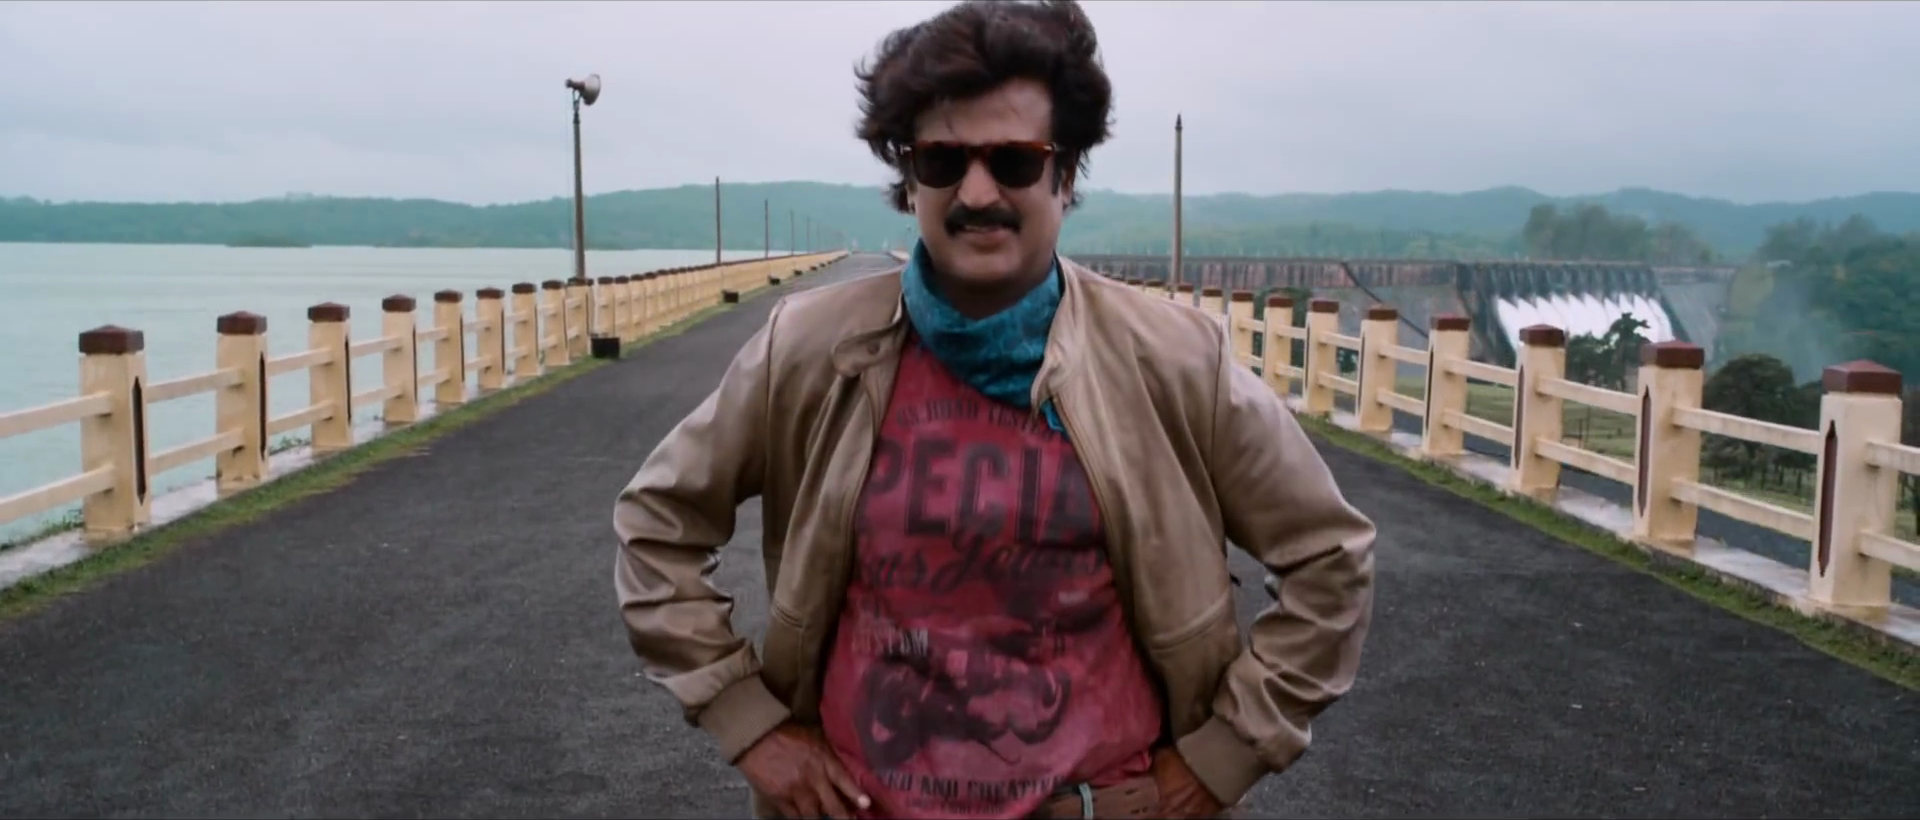 rajinikanth-in-lingaa-official-teaser-hd-wallpaer-download